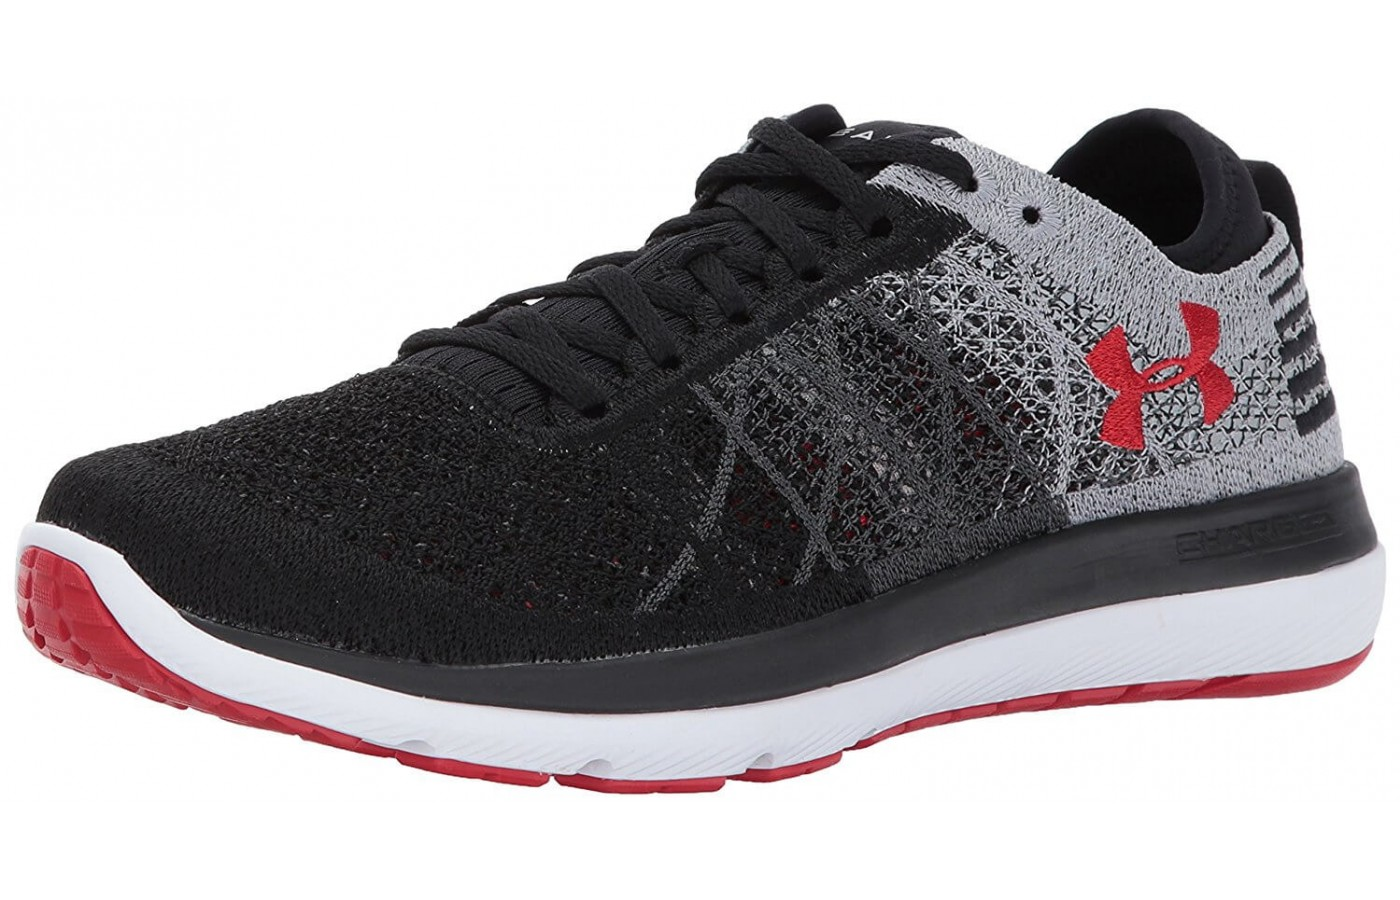 This shoe combines a stylish look with a high quality performance.